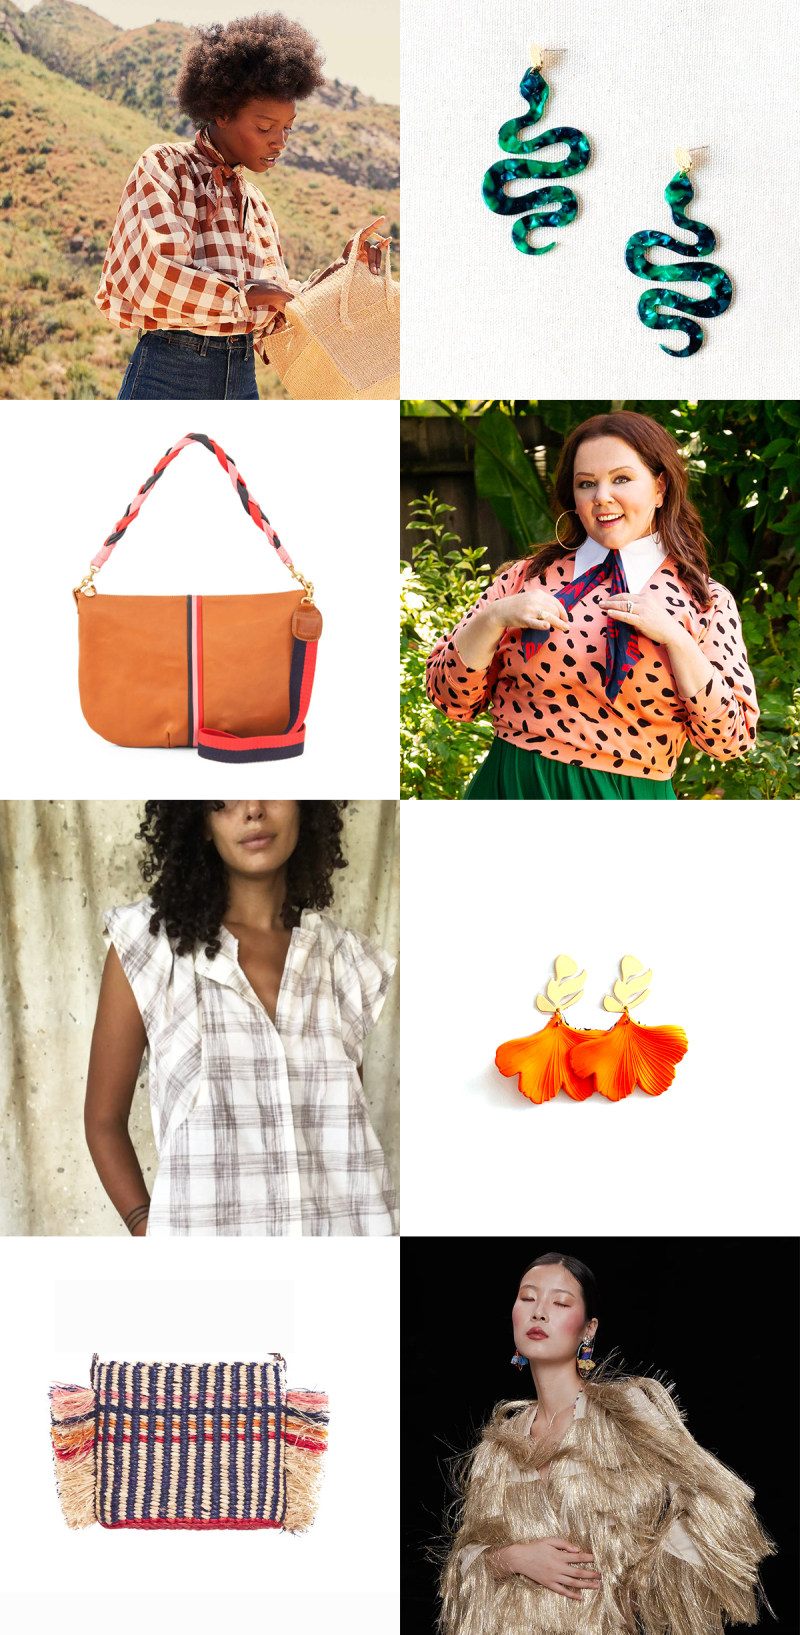 transitional pieces i'm loving right now / oh joy!